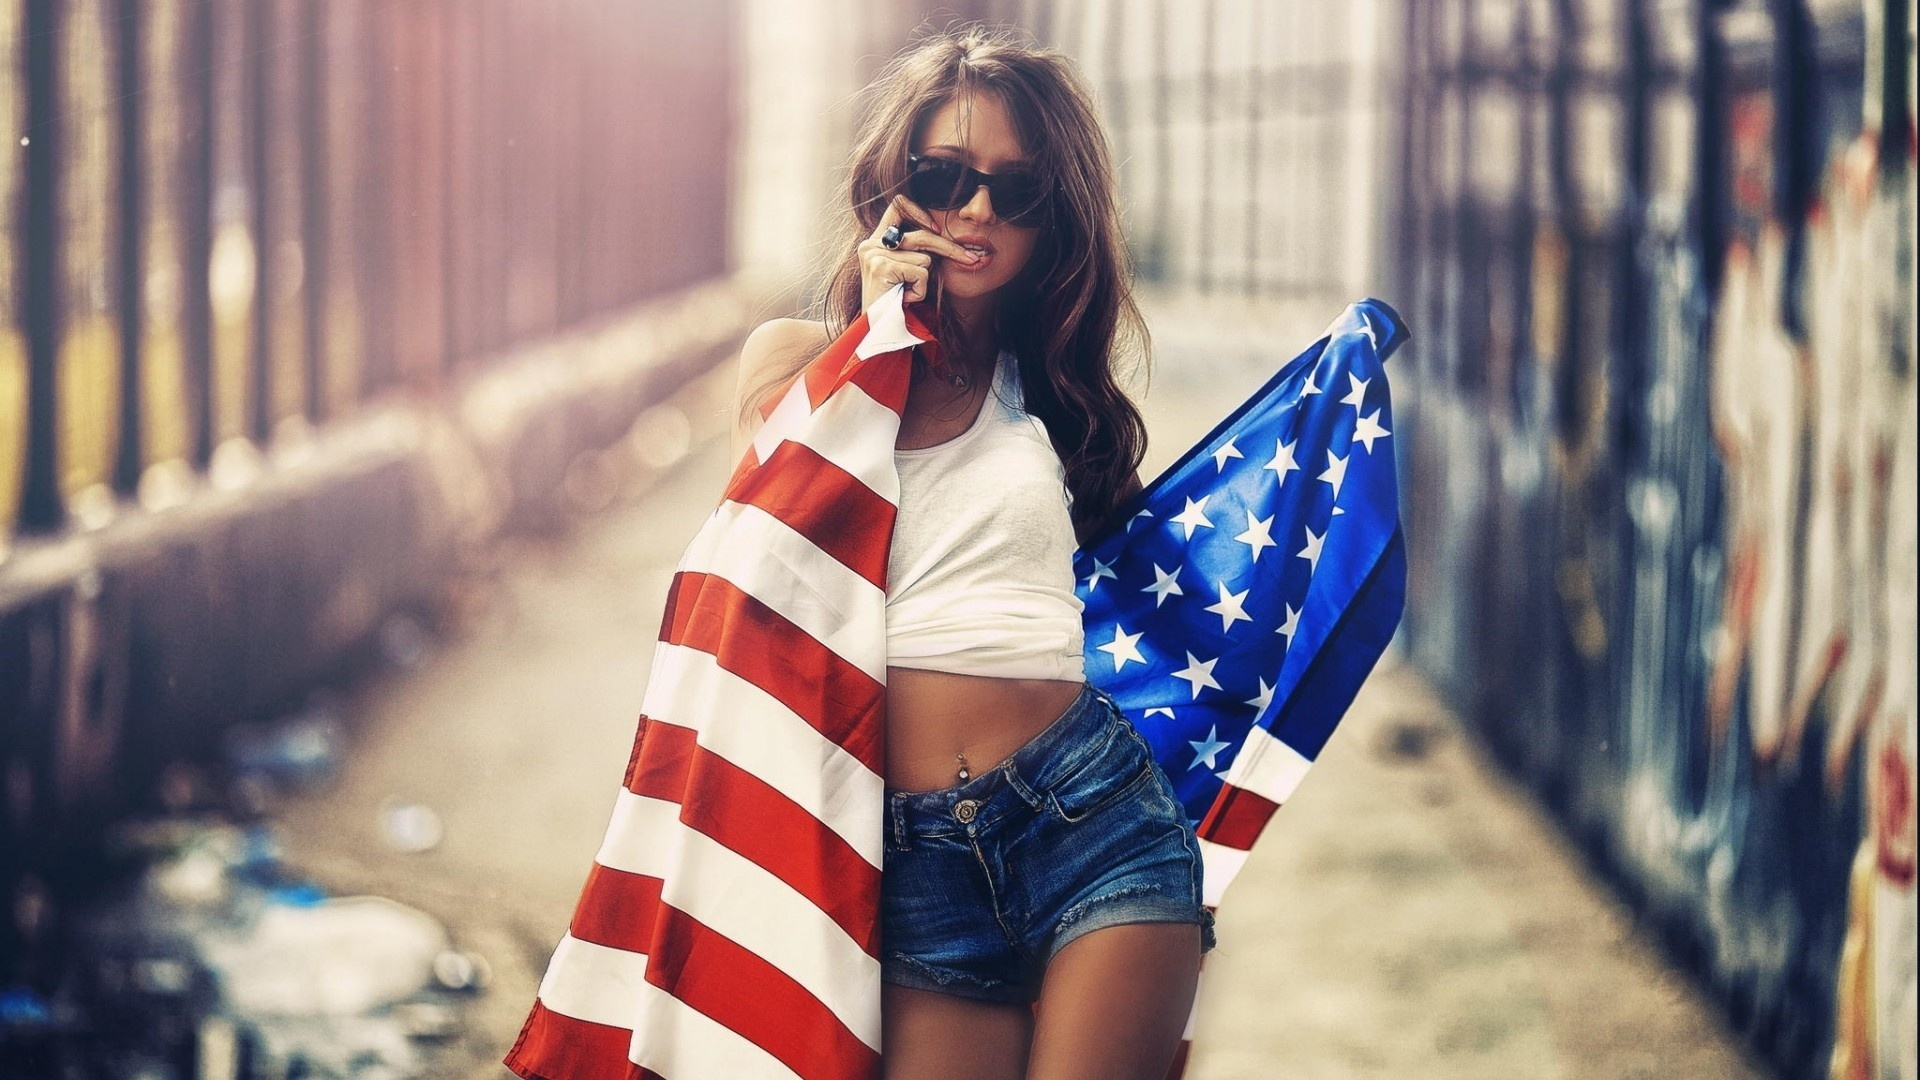 These Patriotic Girls Are Sexy And Keep America Beautiful